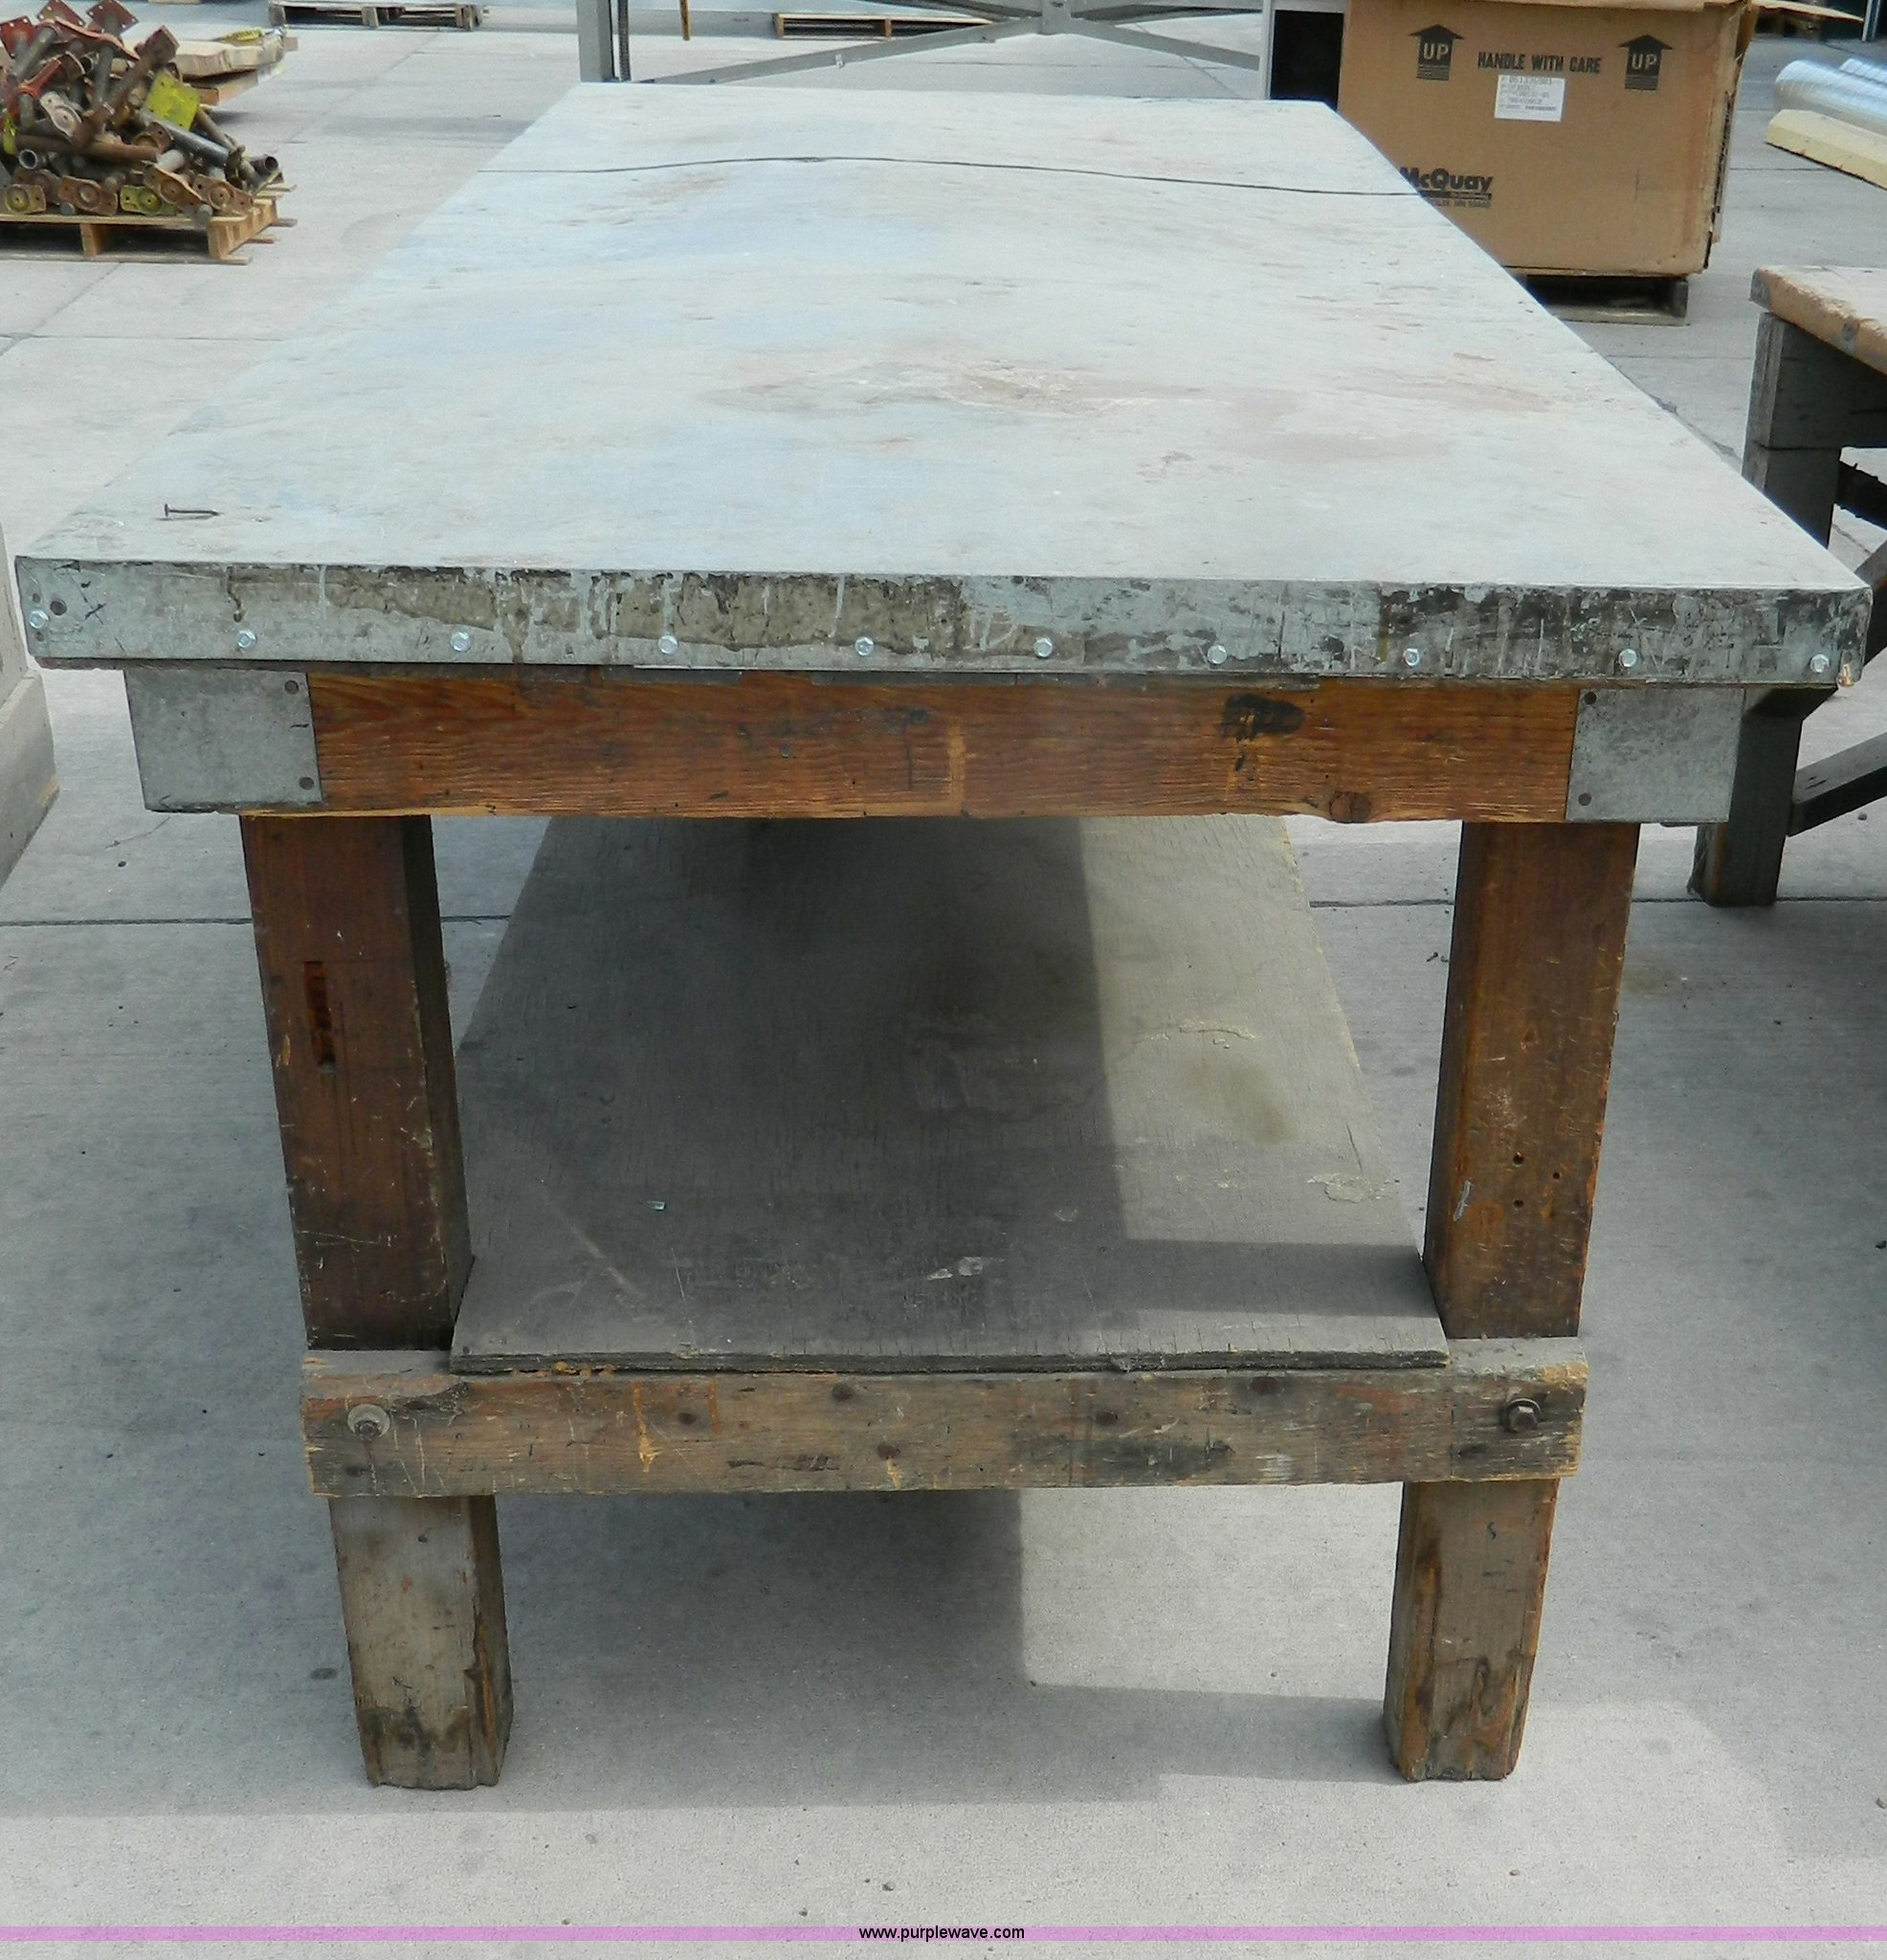 3 sheet metal fabrication work table Item M9818